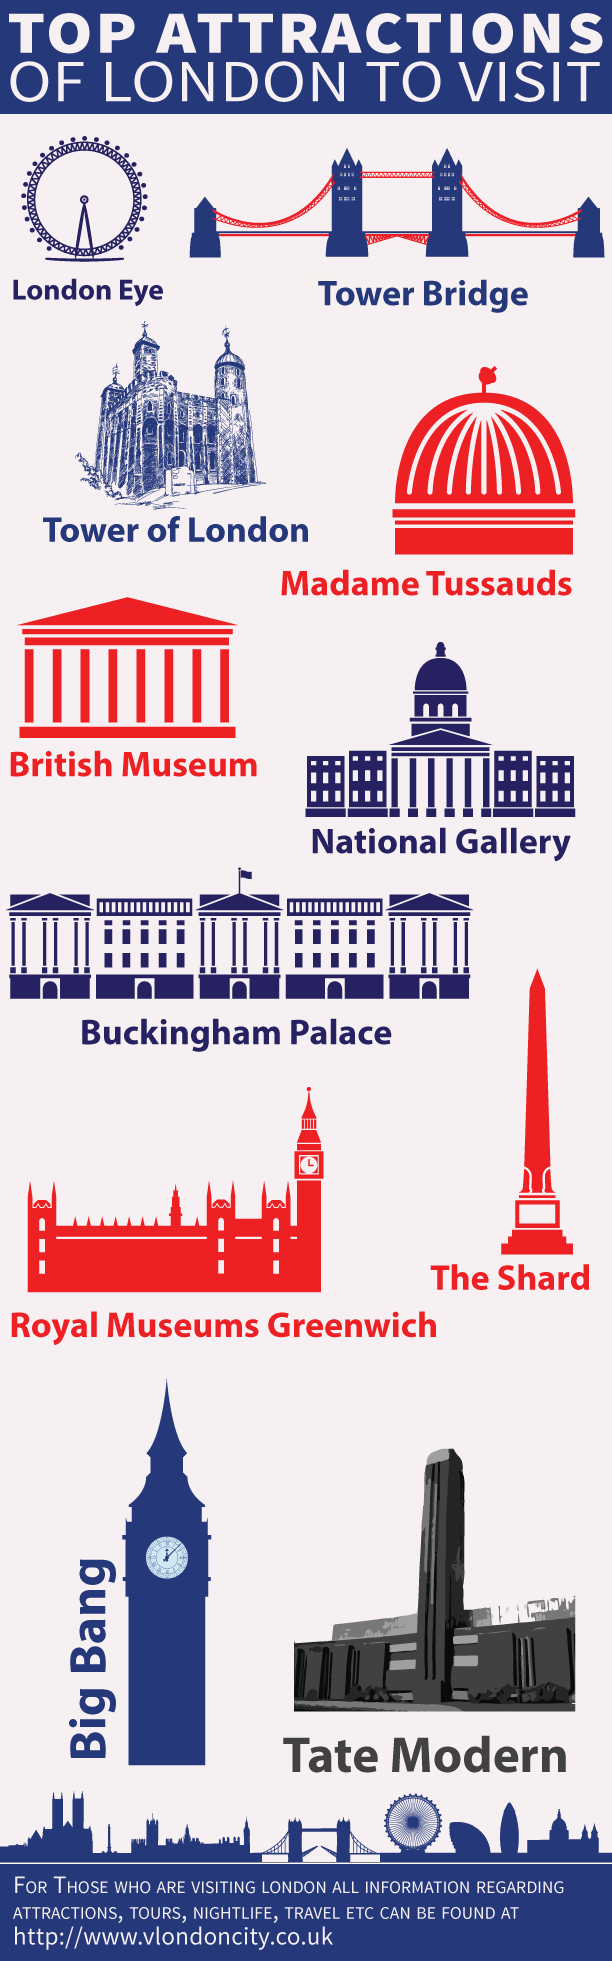 Top Attractions of London to Visit